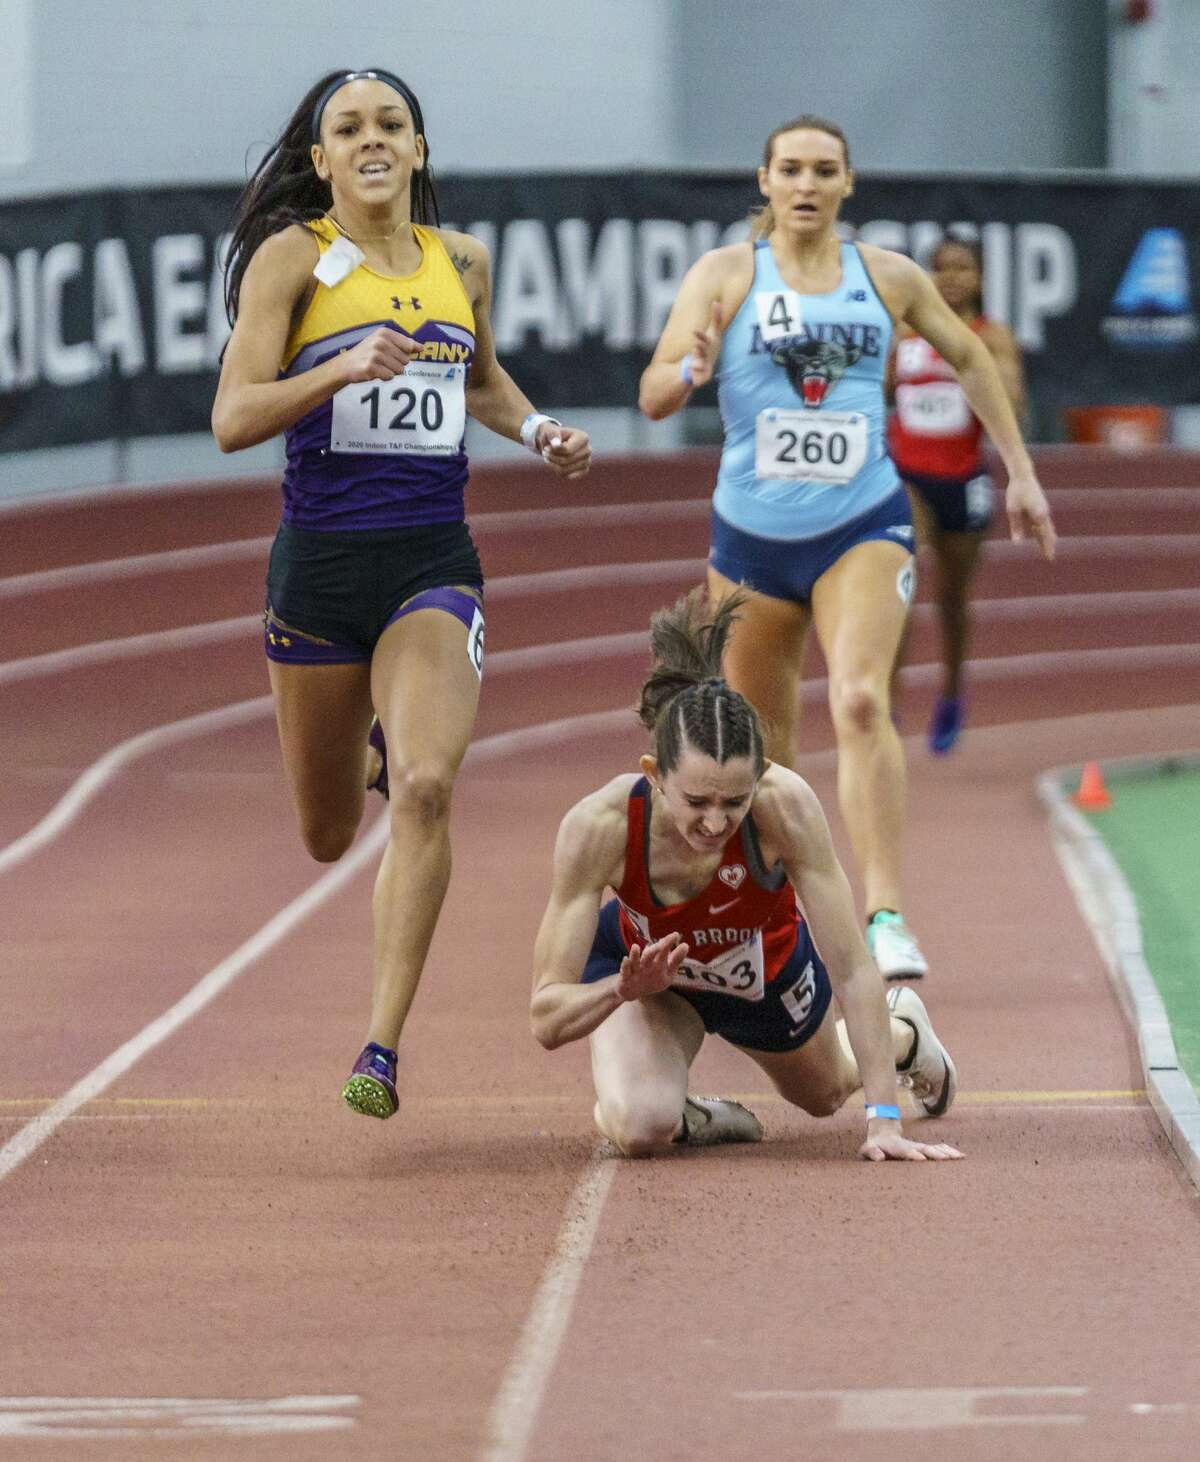 Asia Jinks, UAlbany track and field star, during the 400m final at the 2020 America East Indoor Championships.  The runner who falls is Stony Brook's Amanda Stead, who was the favorite heading into the championship meet and the top seed in the final. (America East Conference)